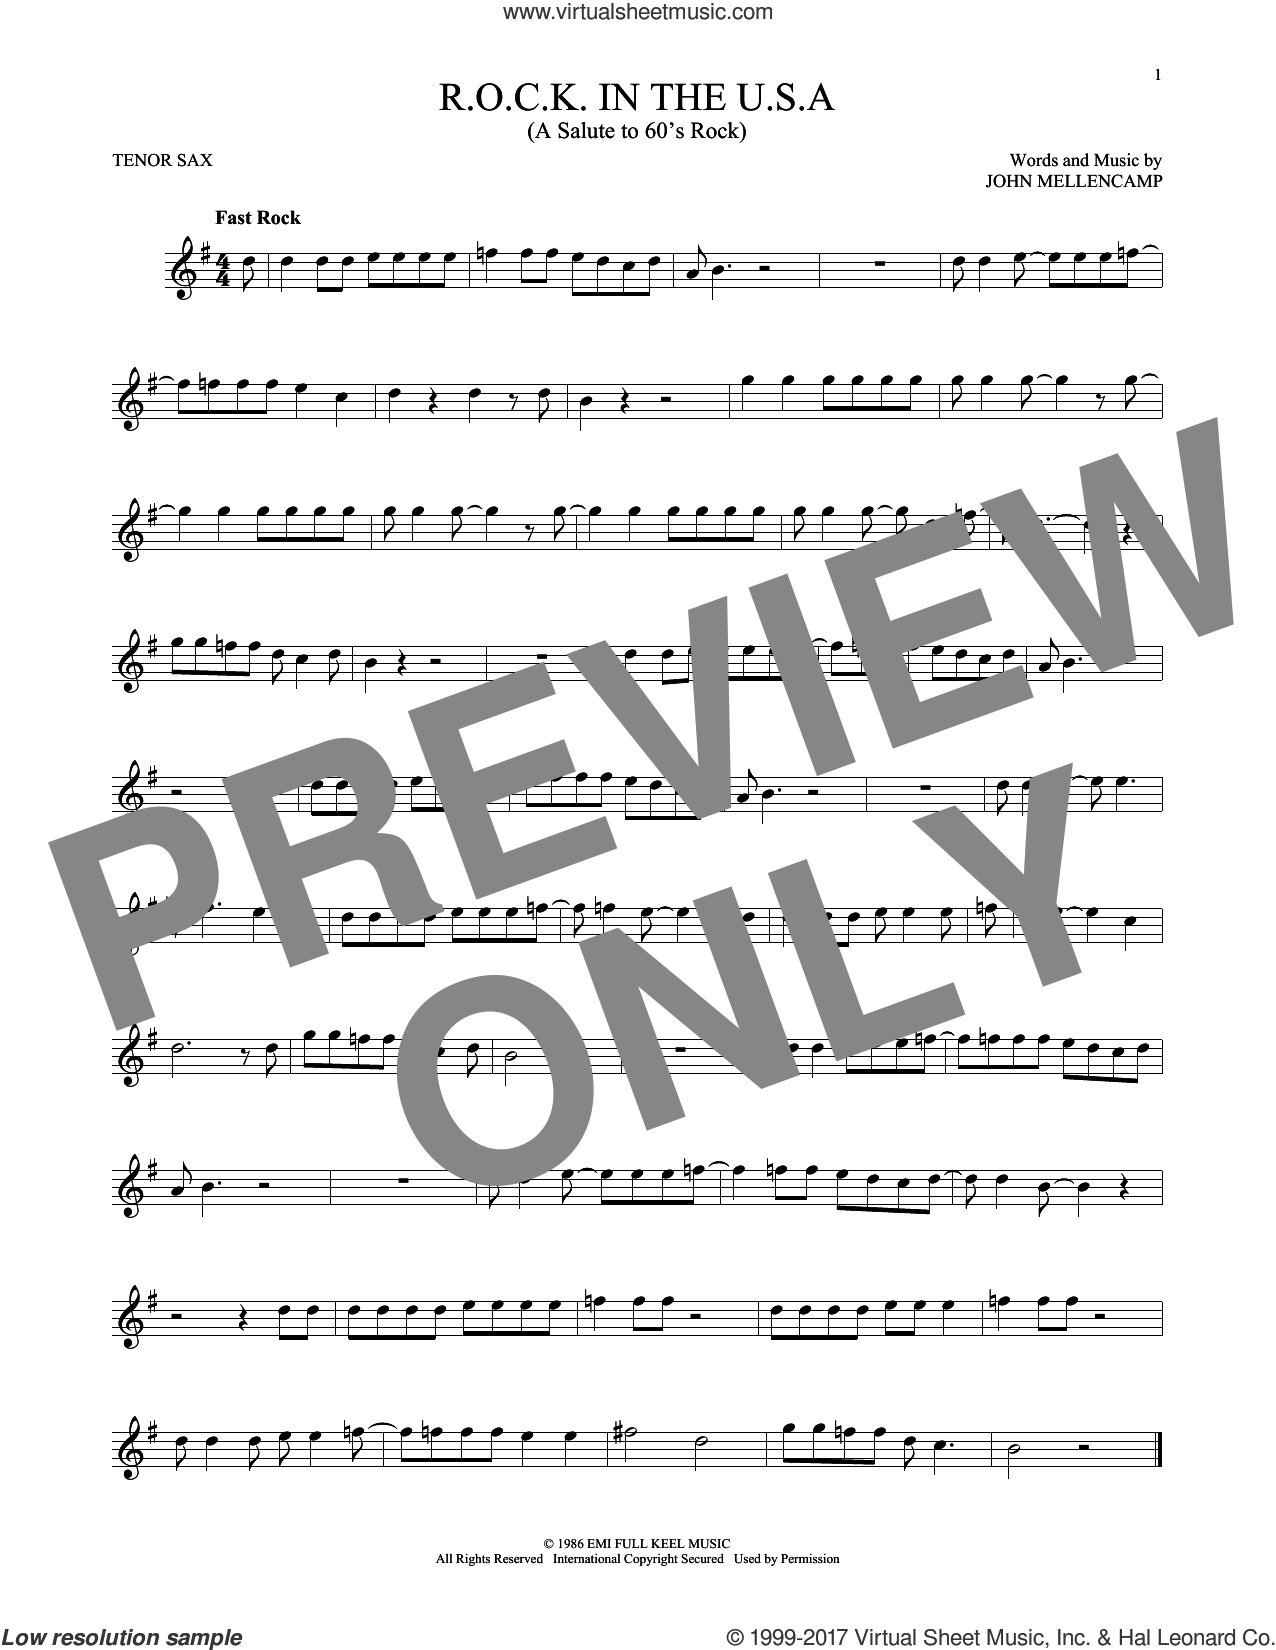 R.O.C.K. In The U.S.A. (A Salute To 60's Rock) sheet music for tenor saxophone solo by John Mellencamp. Score Image Preview.